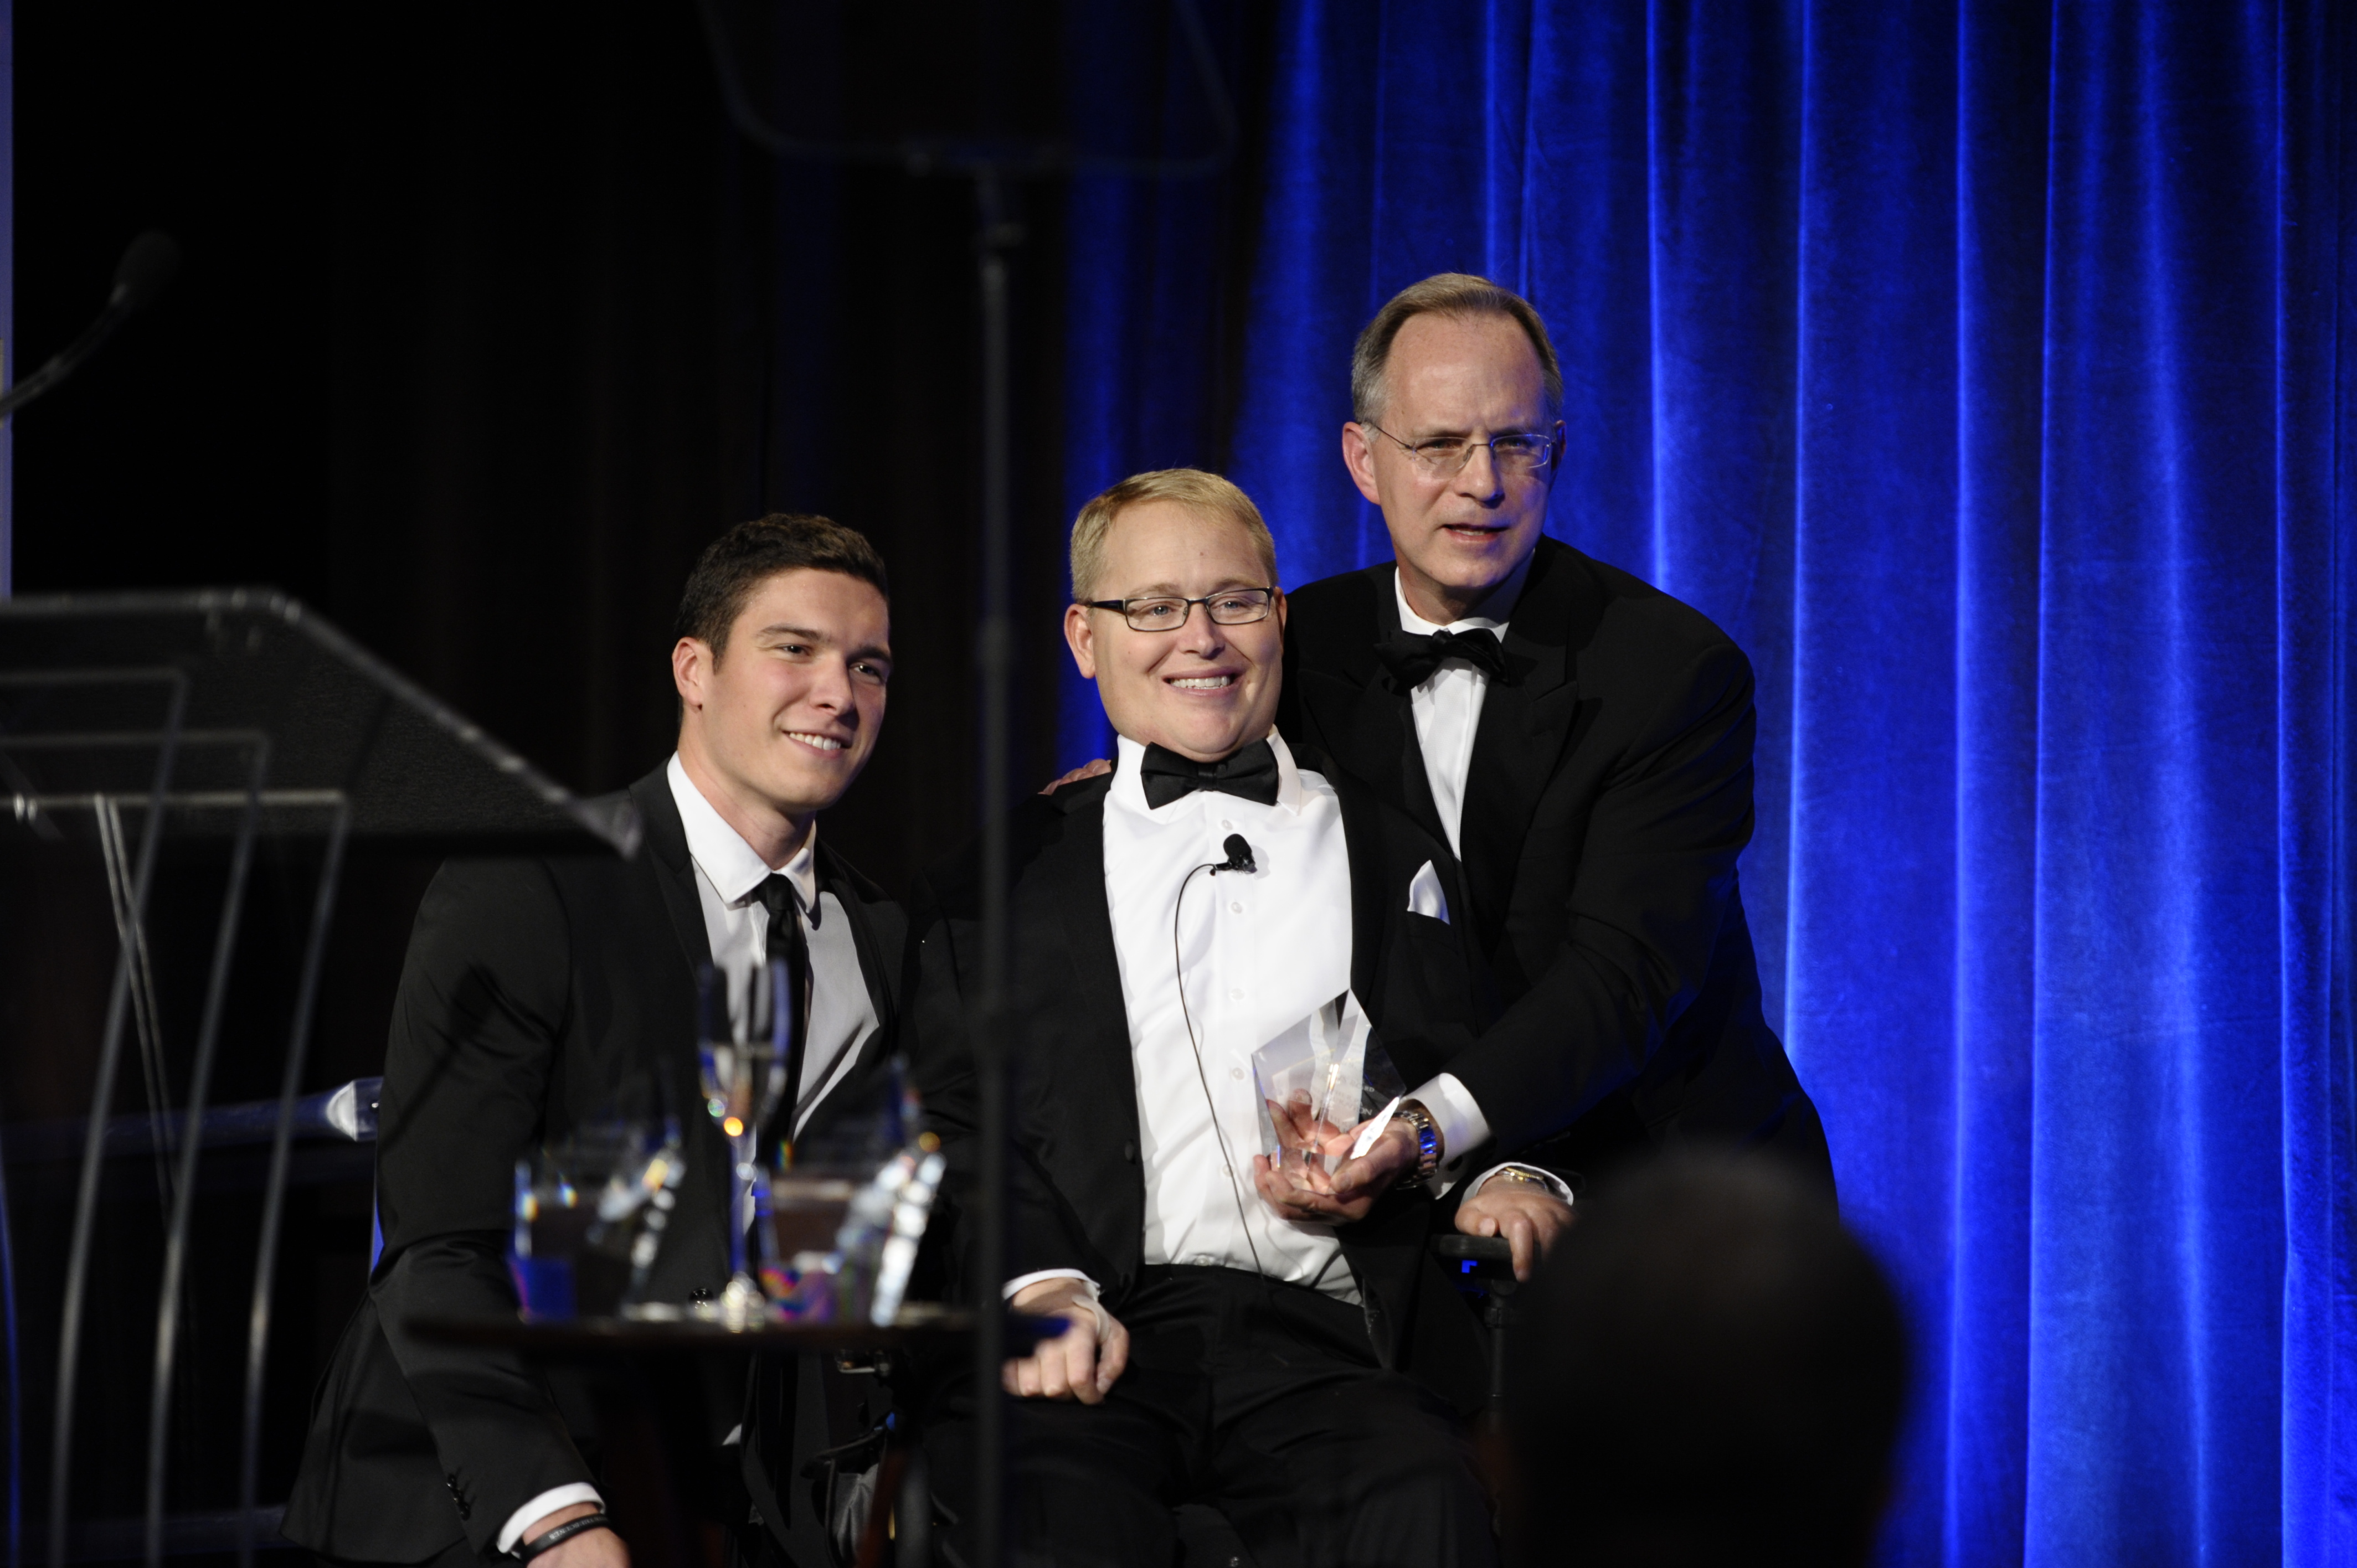 Travis Roy in 2014 when he received the Christopher Reeve Spirit of Courage Award